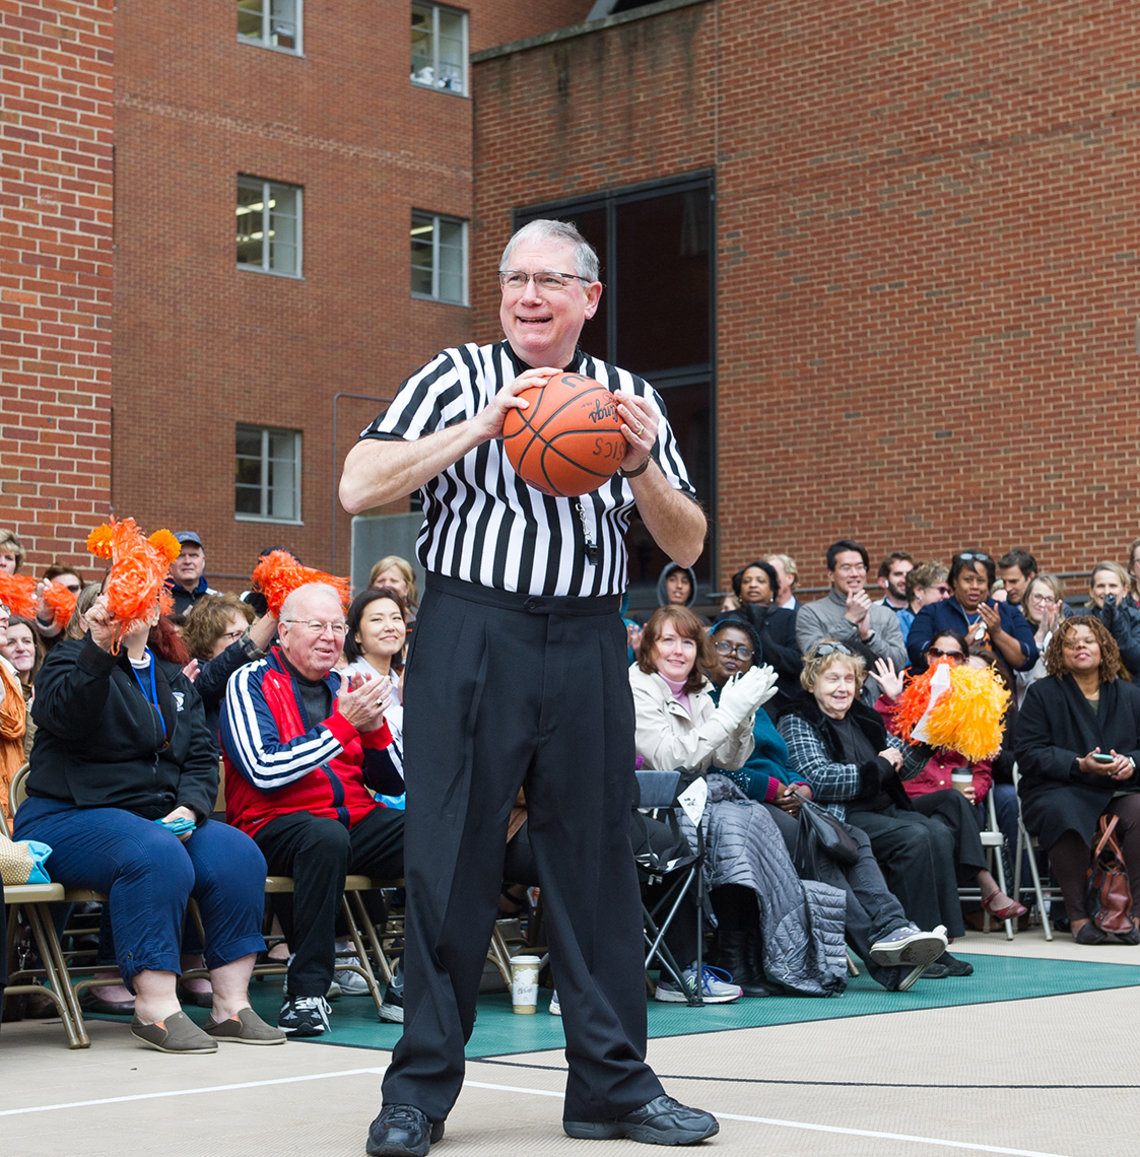 A smiling Tabak stands with basketball in front of crowd.